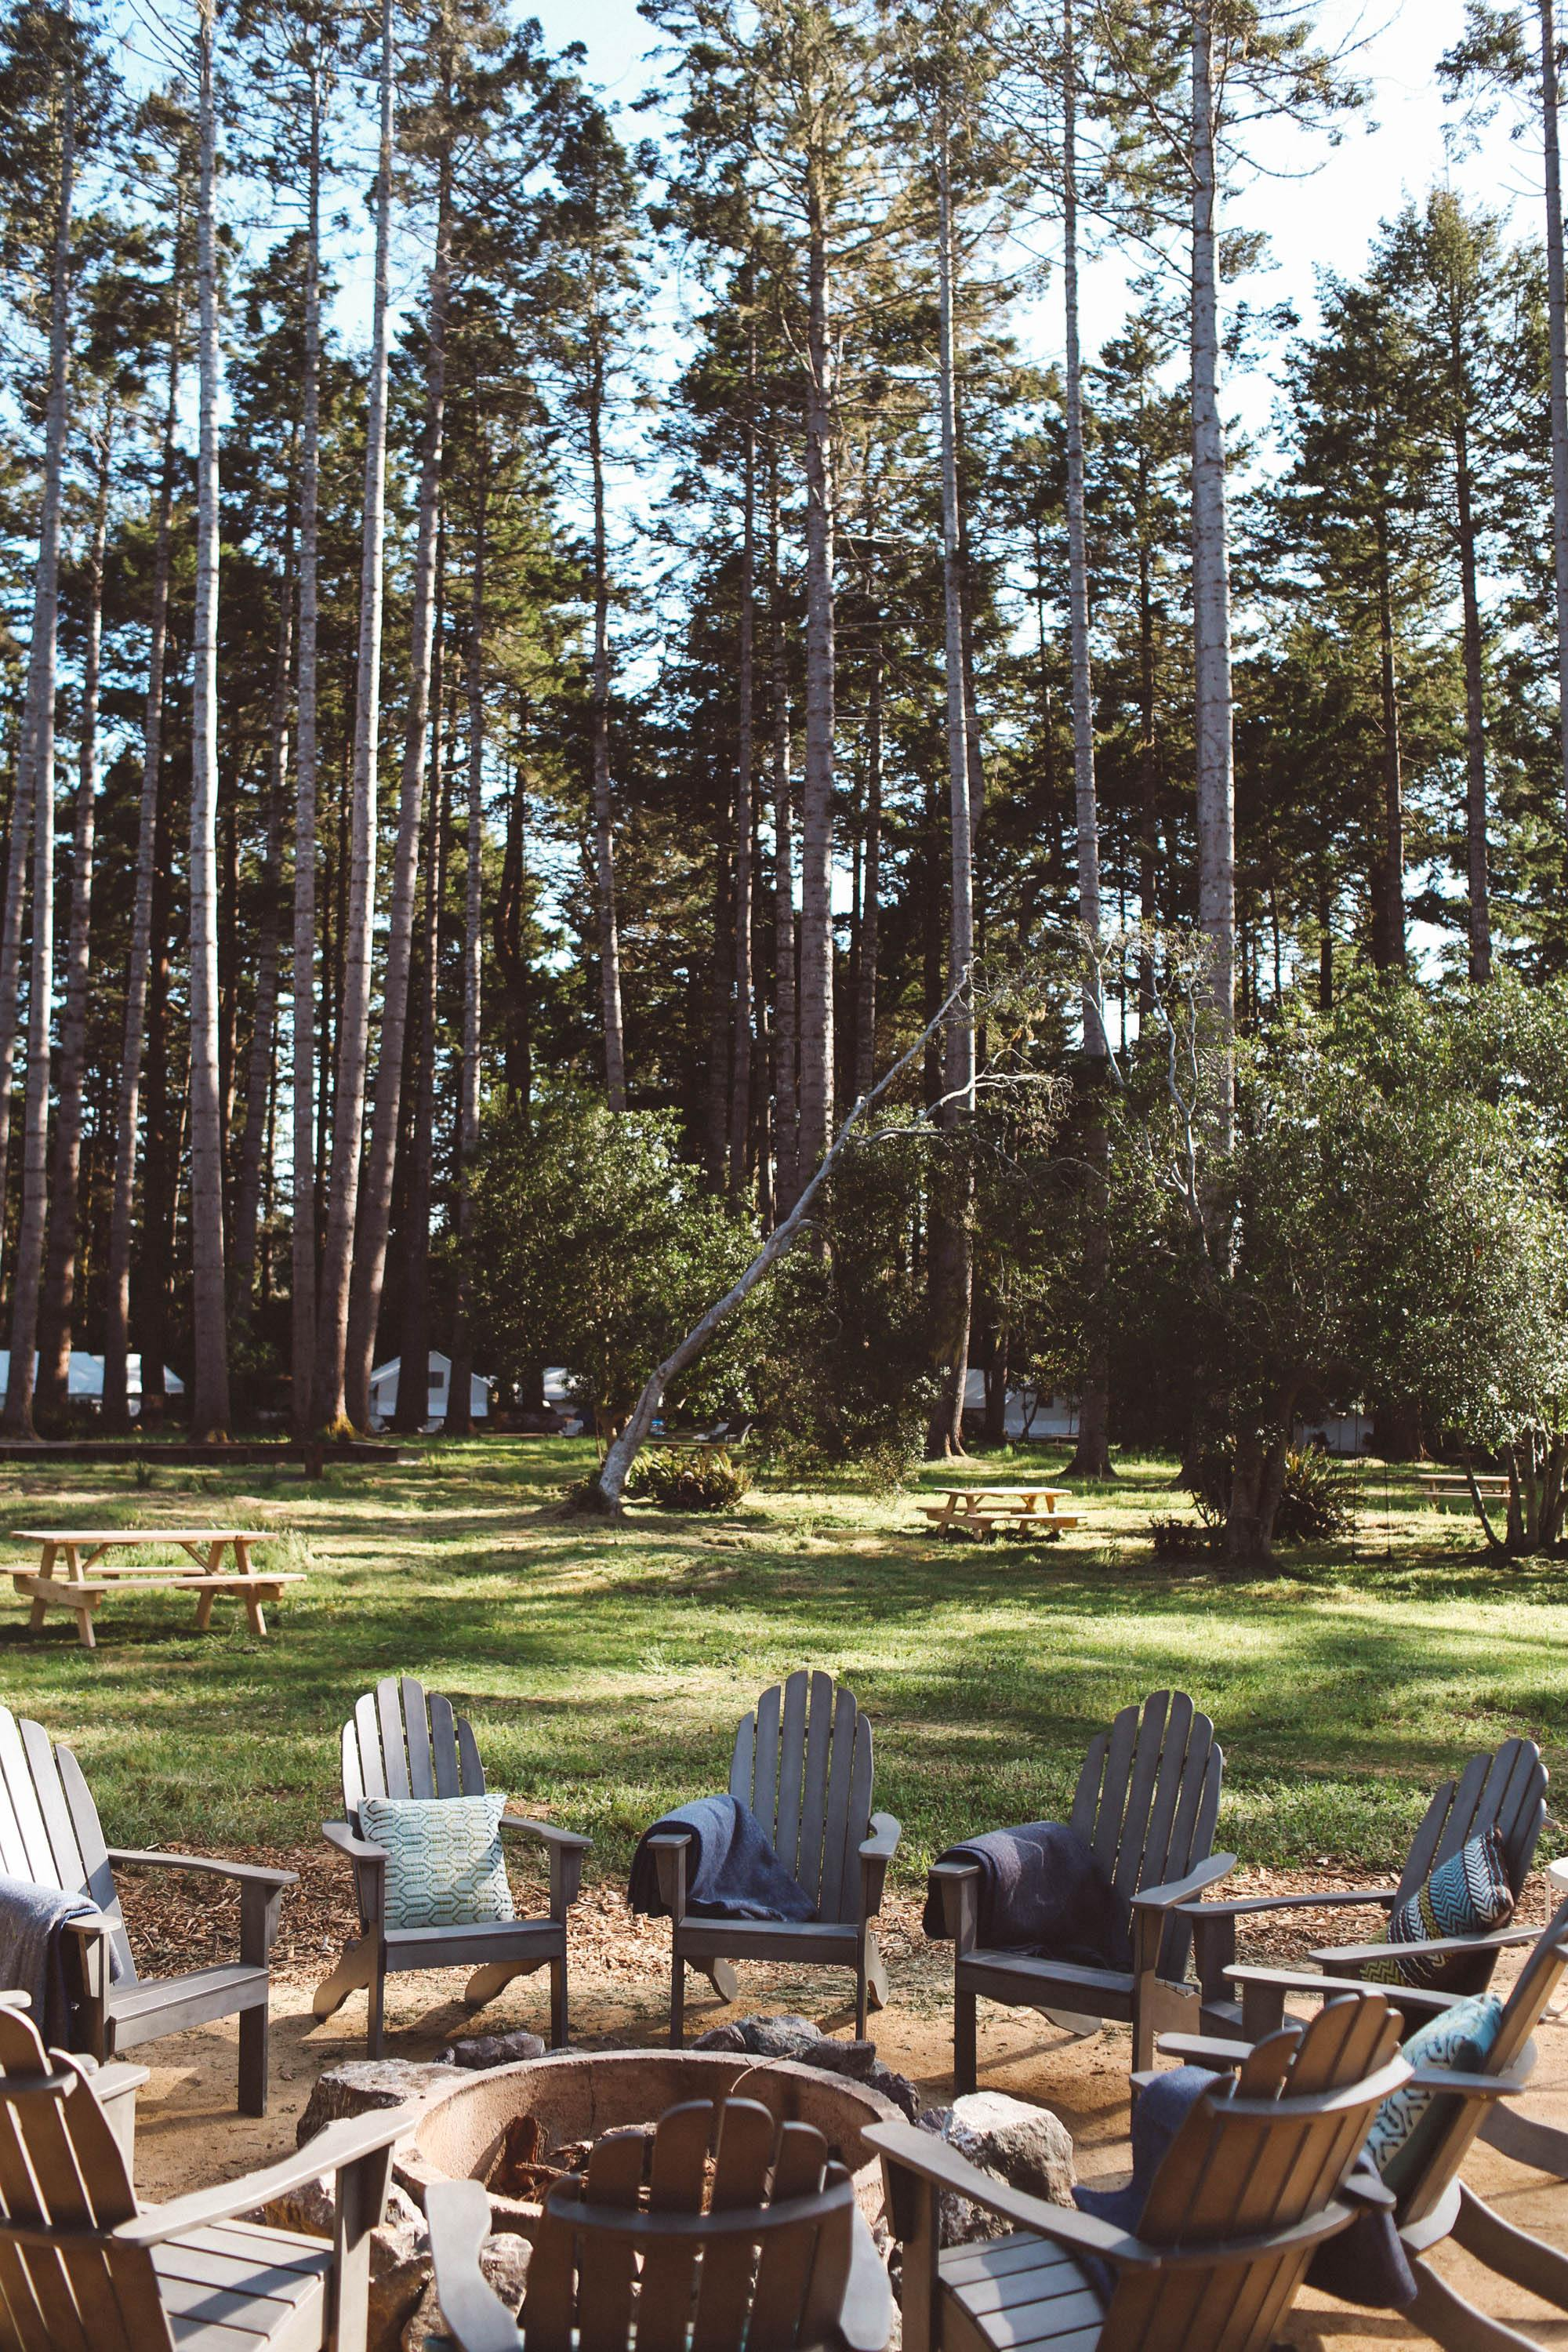 Chairs set up around a fire pit and tall trees in back